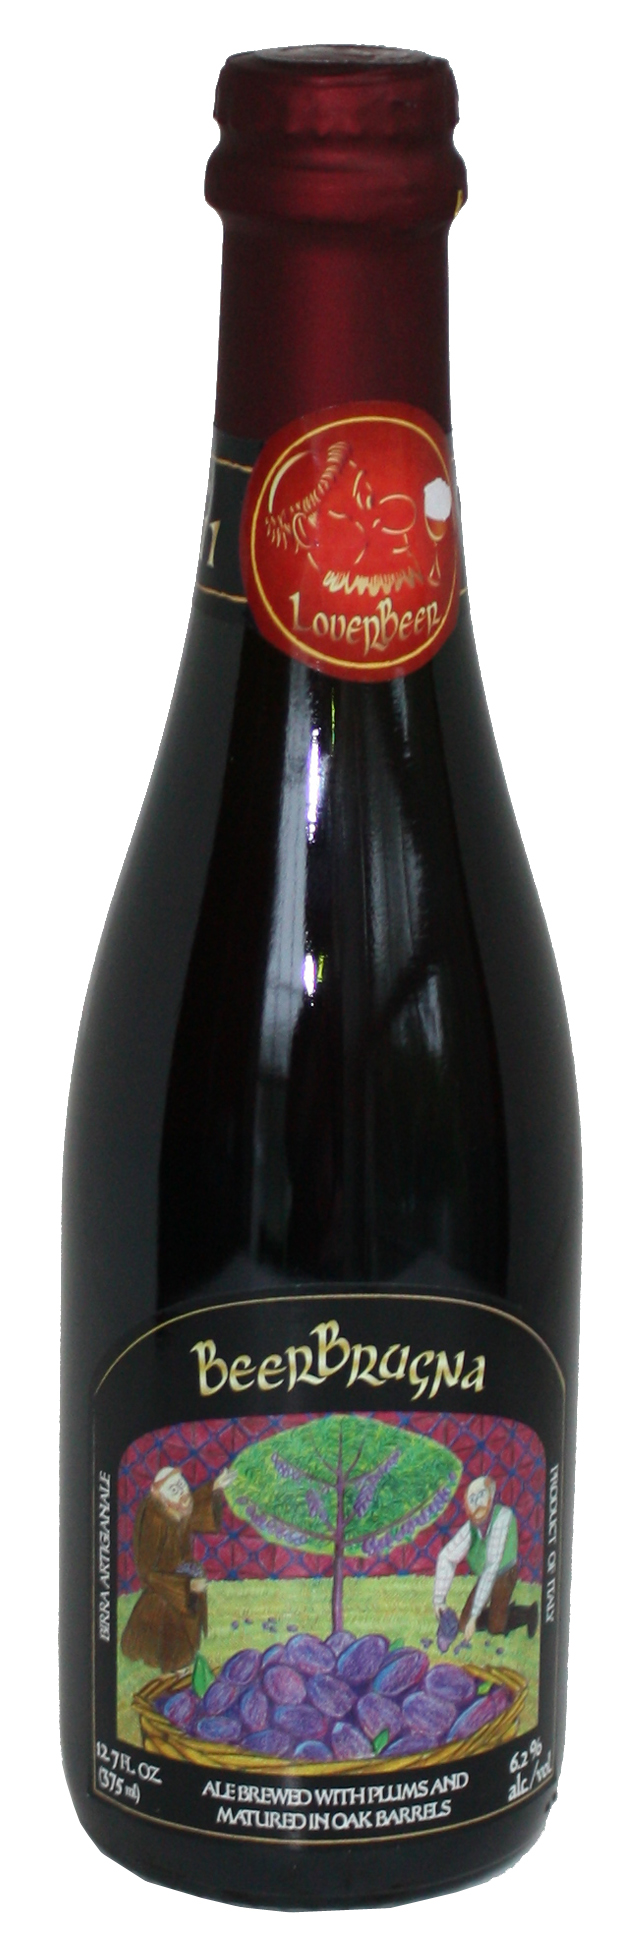 BeerBrugna bottle